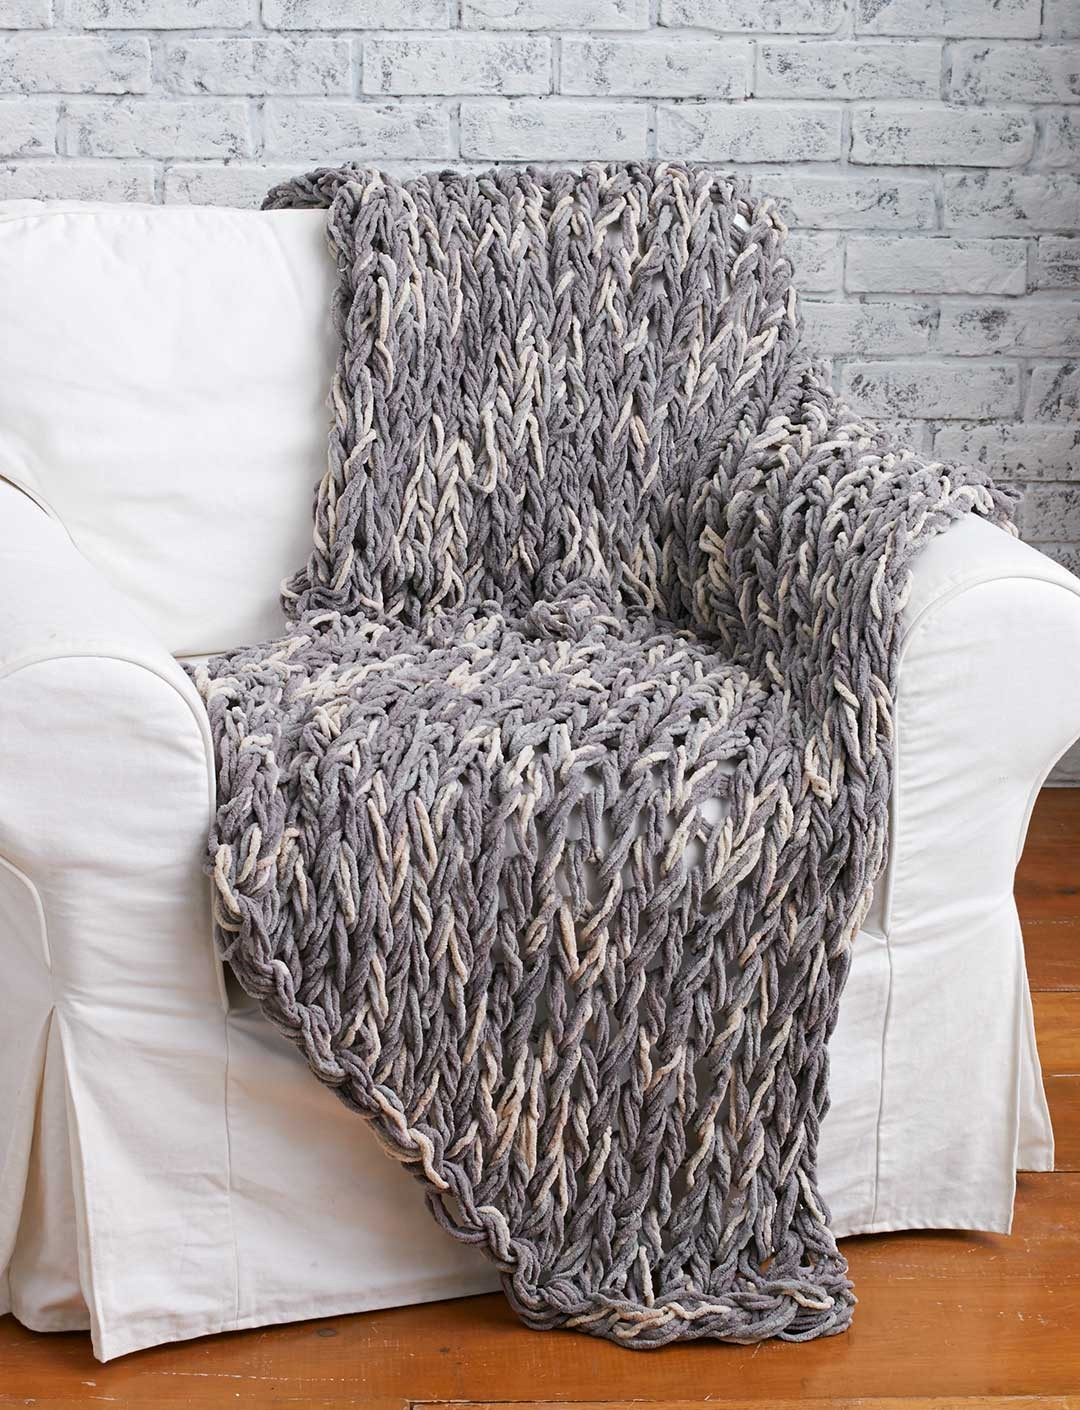 Bernat Arm Knit 3-Hour Blanket, Arm Knit Pattern ...